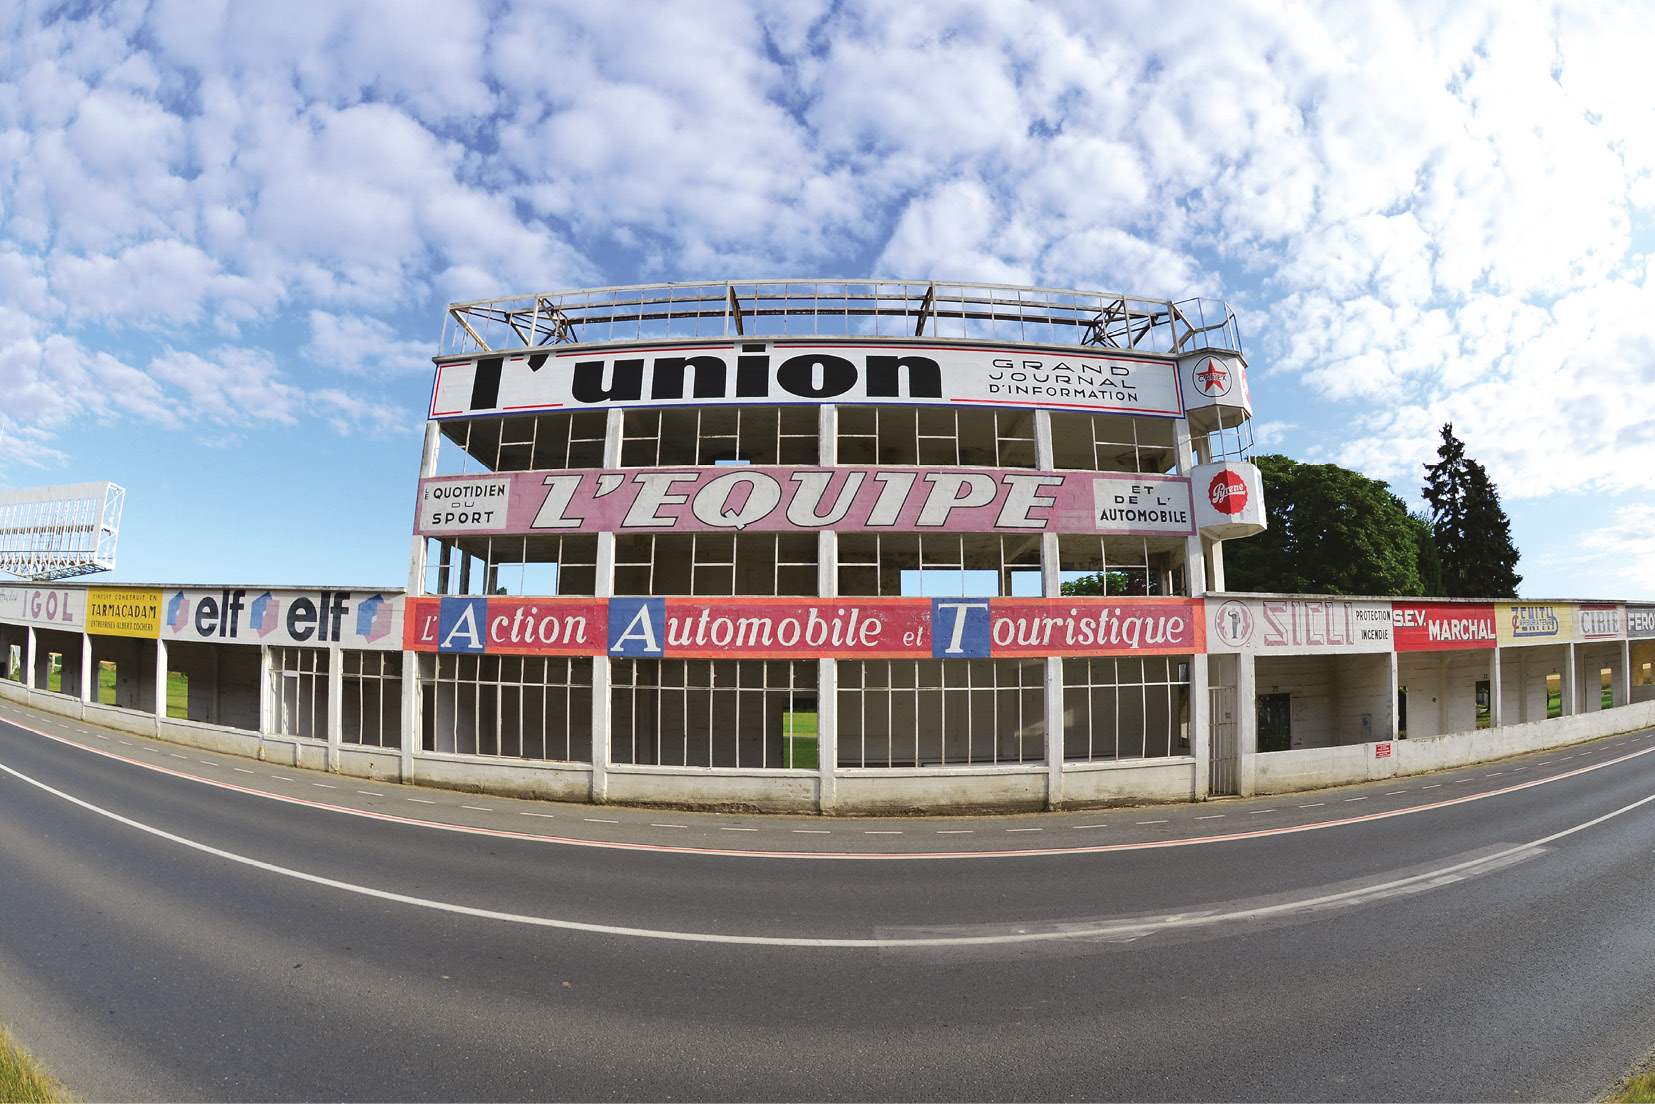 Established in 1926 and last hosted a grand prix in 1966; racing ceased entirely at Reims in 1972